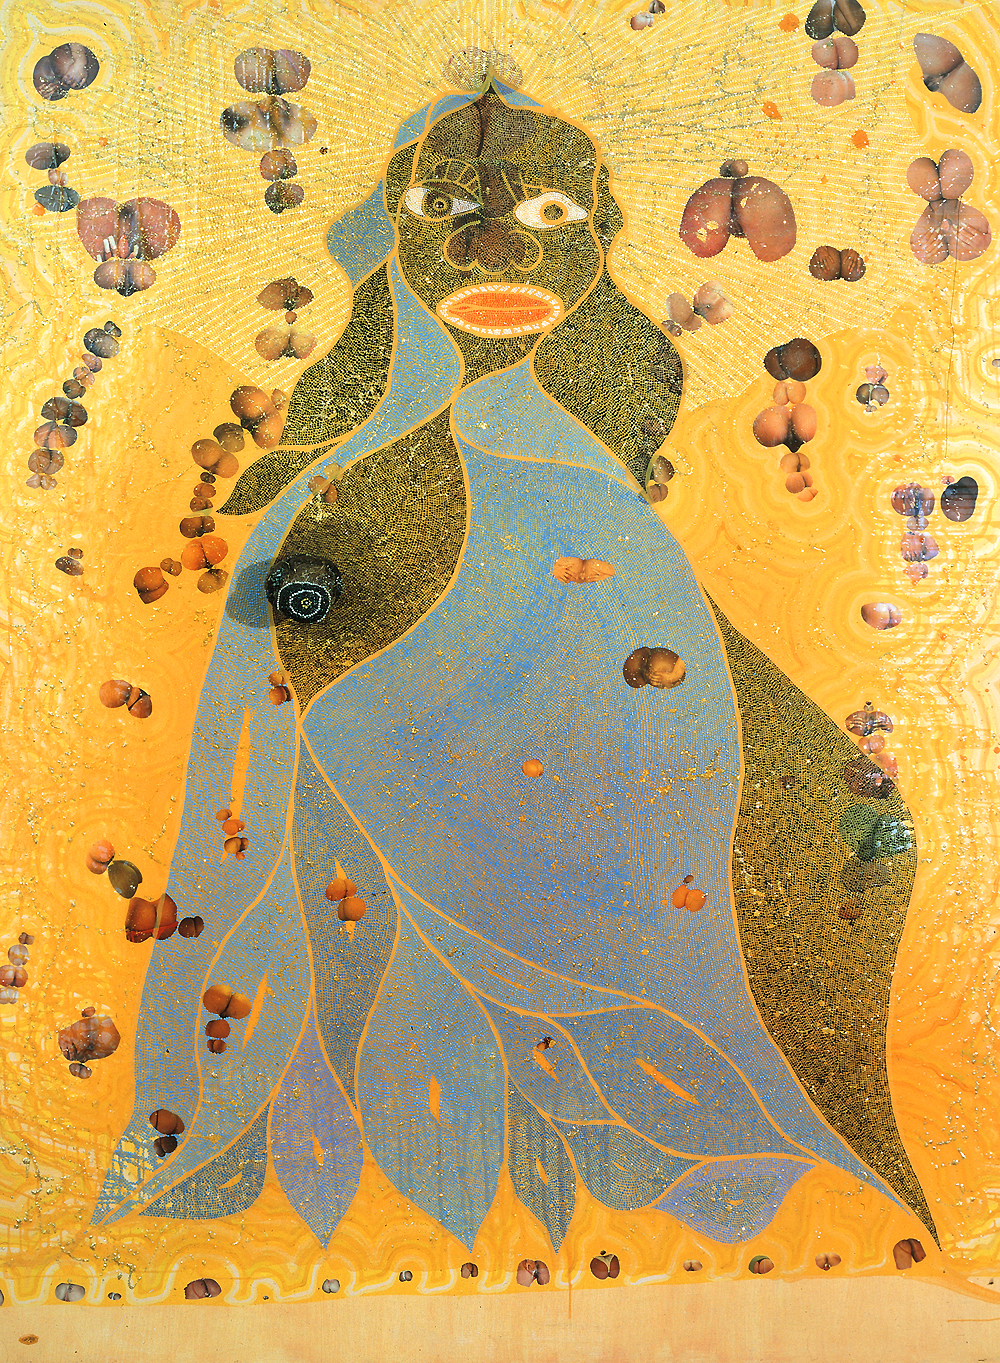 Ofili holy virgin mary